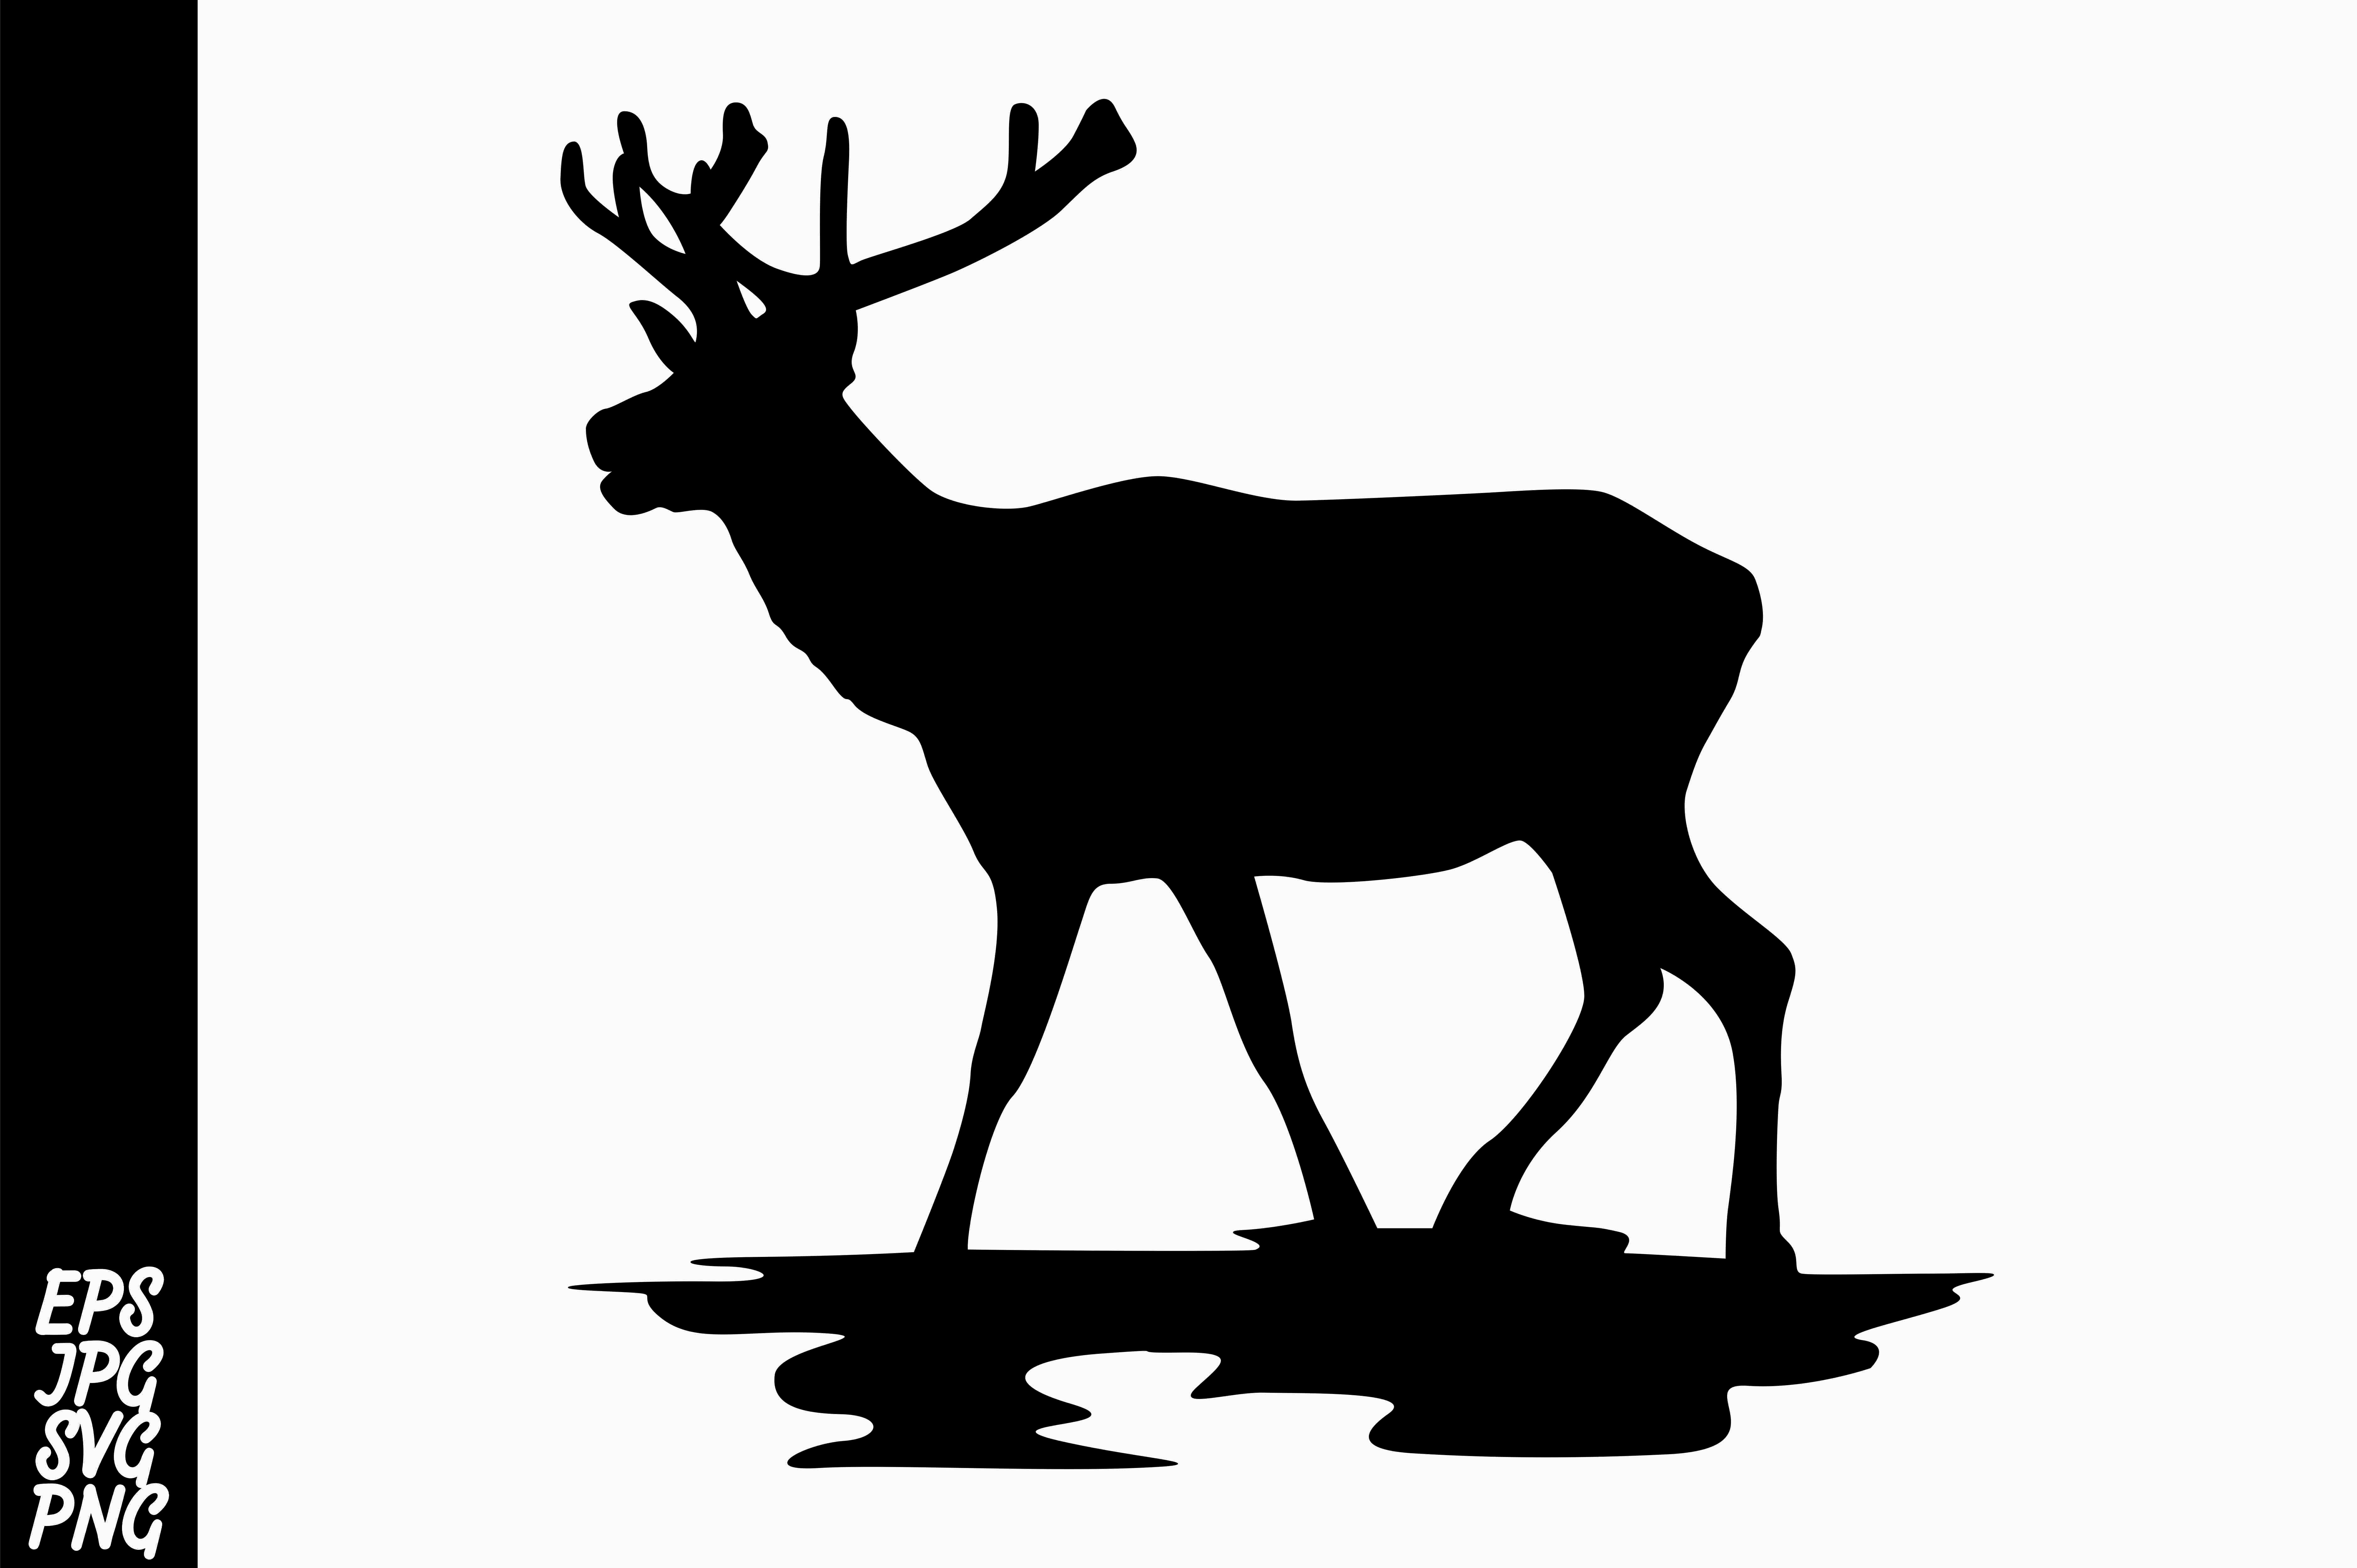 Download Free Deer Silhouette Graphic By Arief Sapta Adjie Creative Fabrica SVG Cut Files